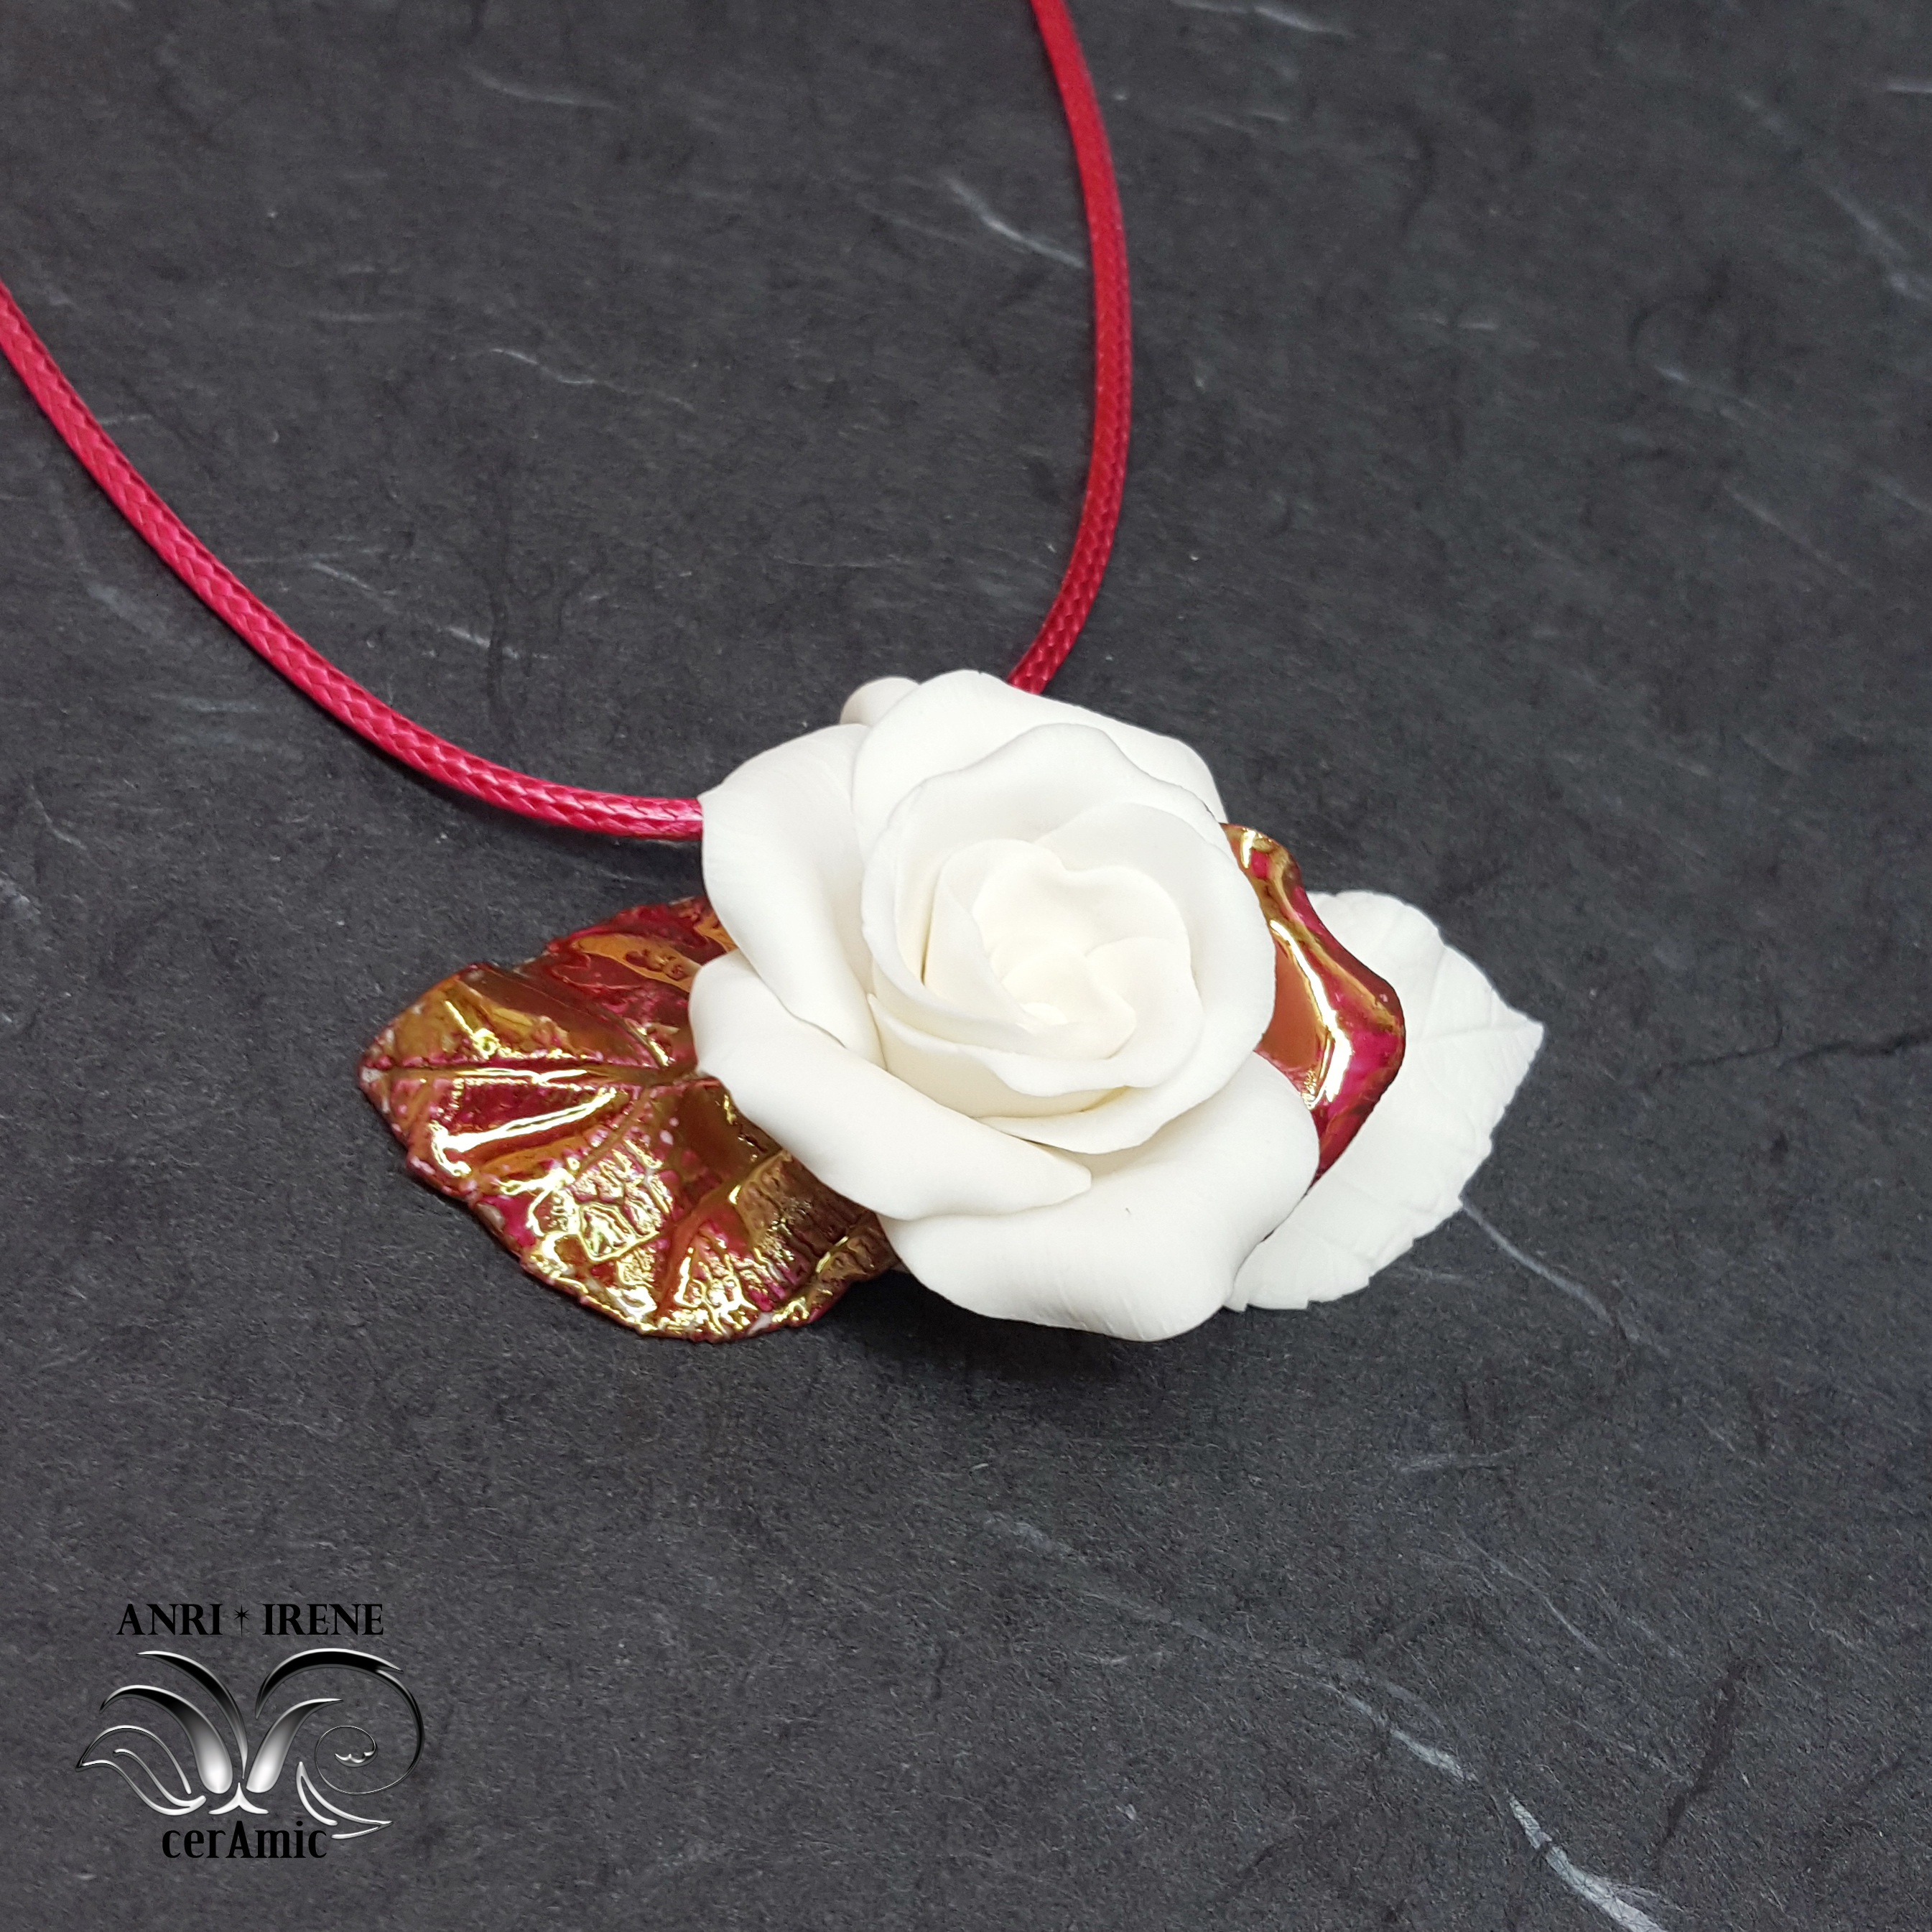 ceramic jewelry rose pendant